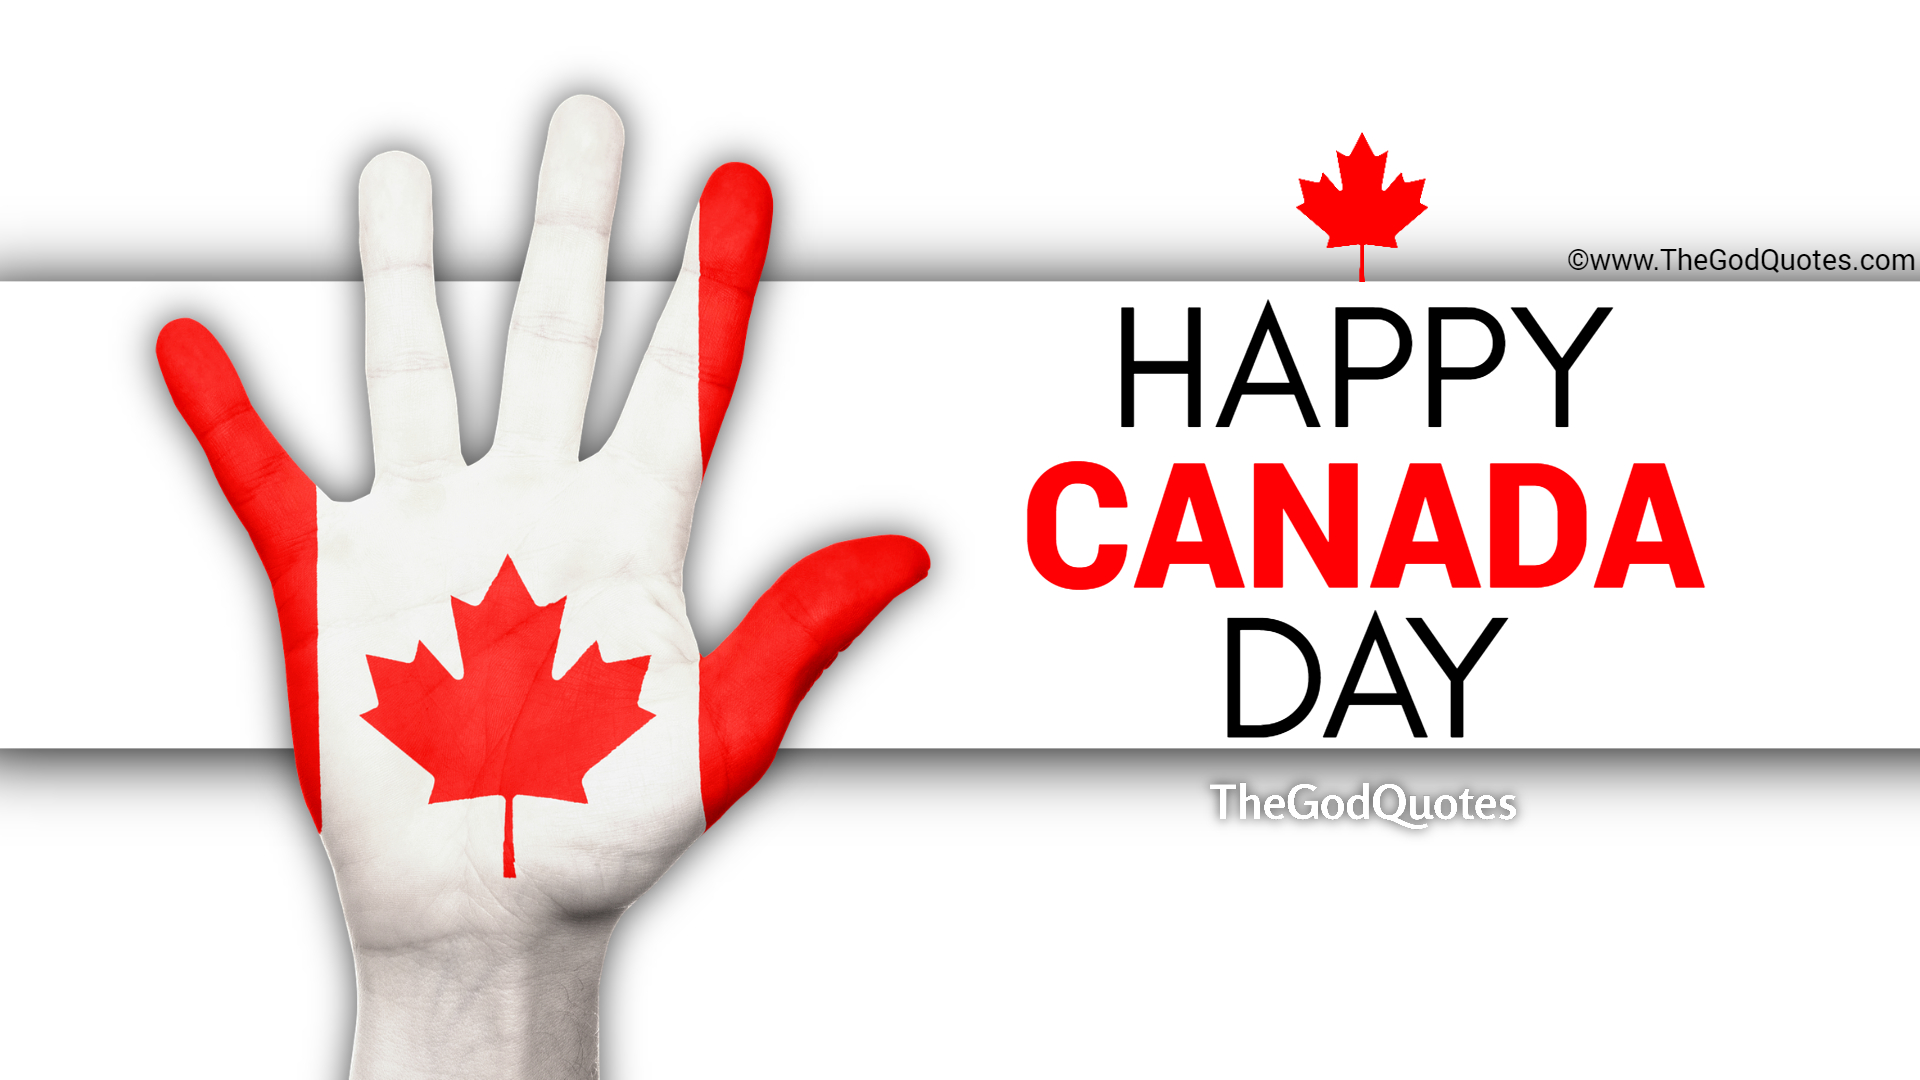 HAPPY CANADA DAY Quotes, Wishes, Greetings, Images, Pictures, Photos, Wallpaper